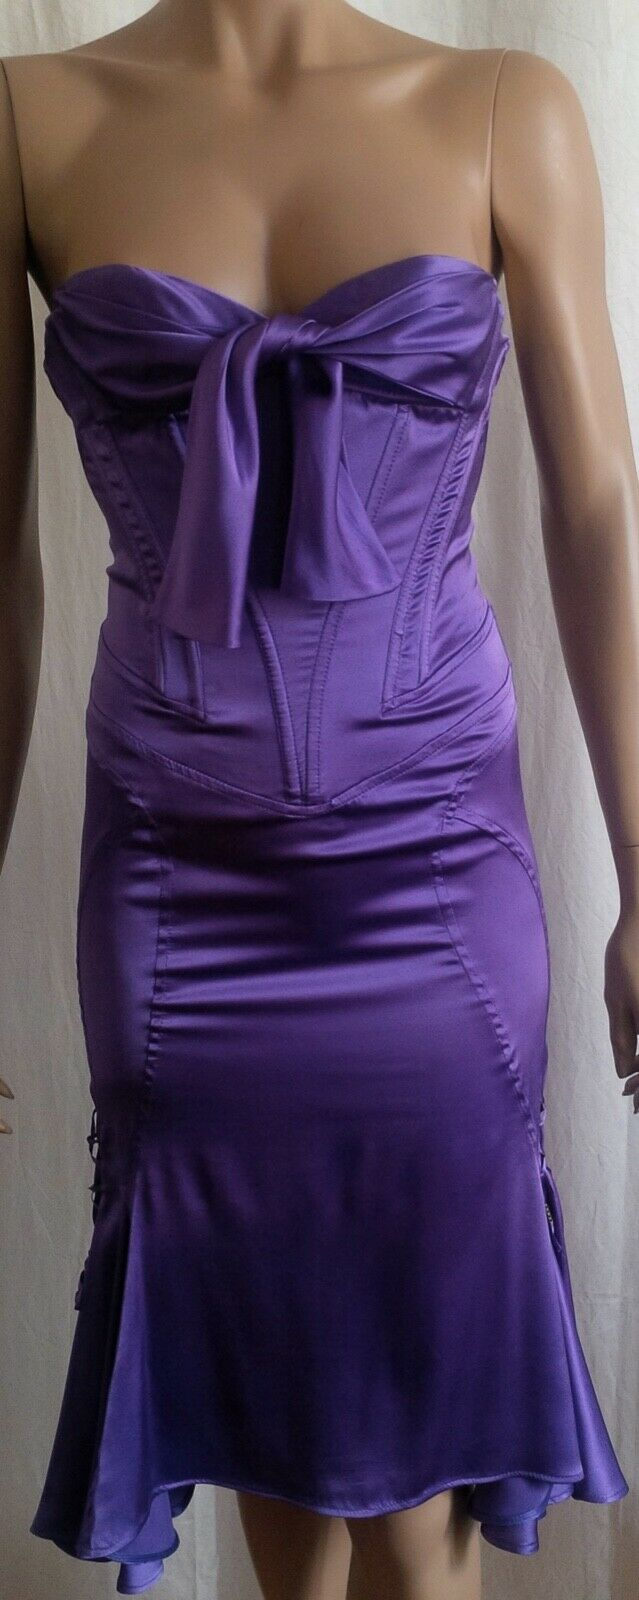 Roberto Cavalli Iconic dress bustier corset mermaid siren silk purple purple